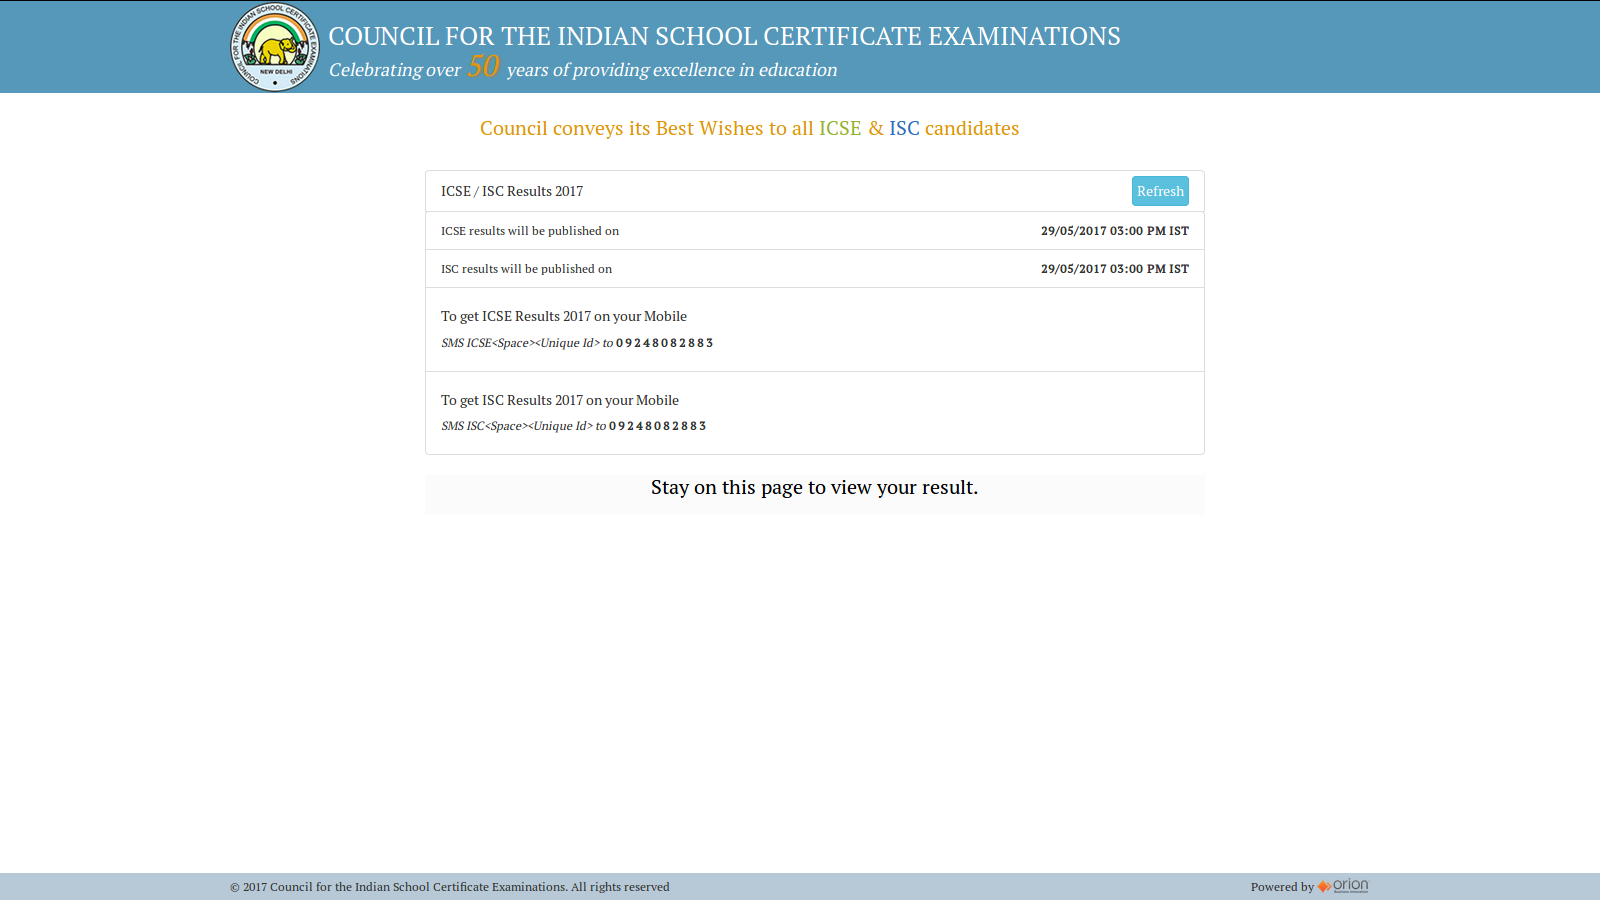 ICSE class 10th and 12th class results will be declared today : Check steps here for cisce.org